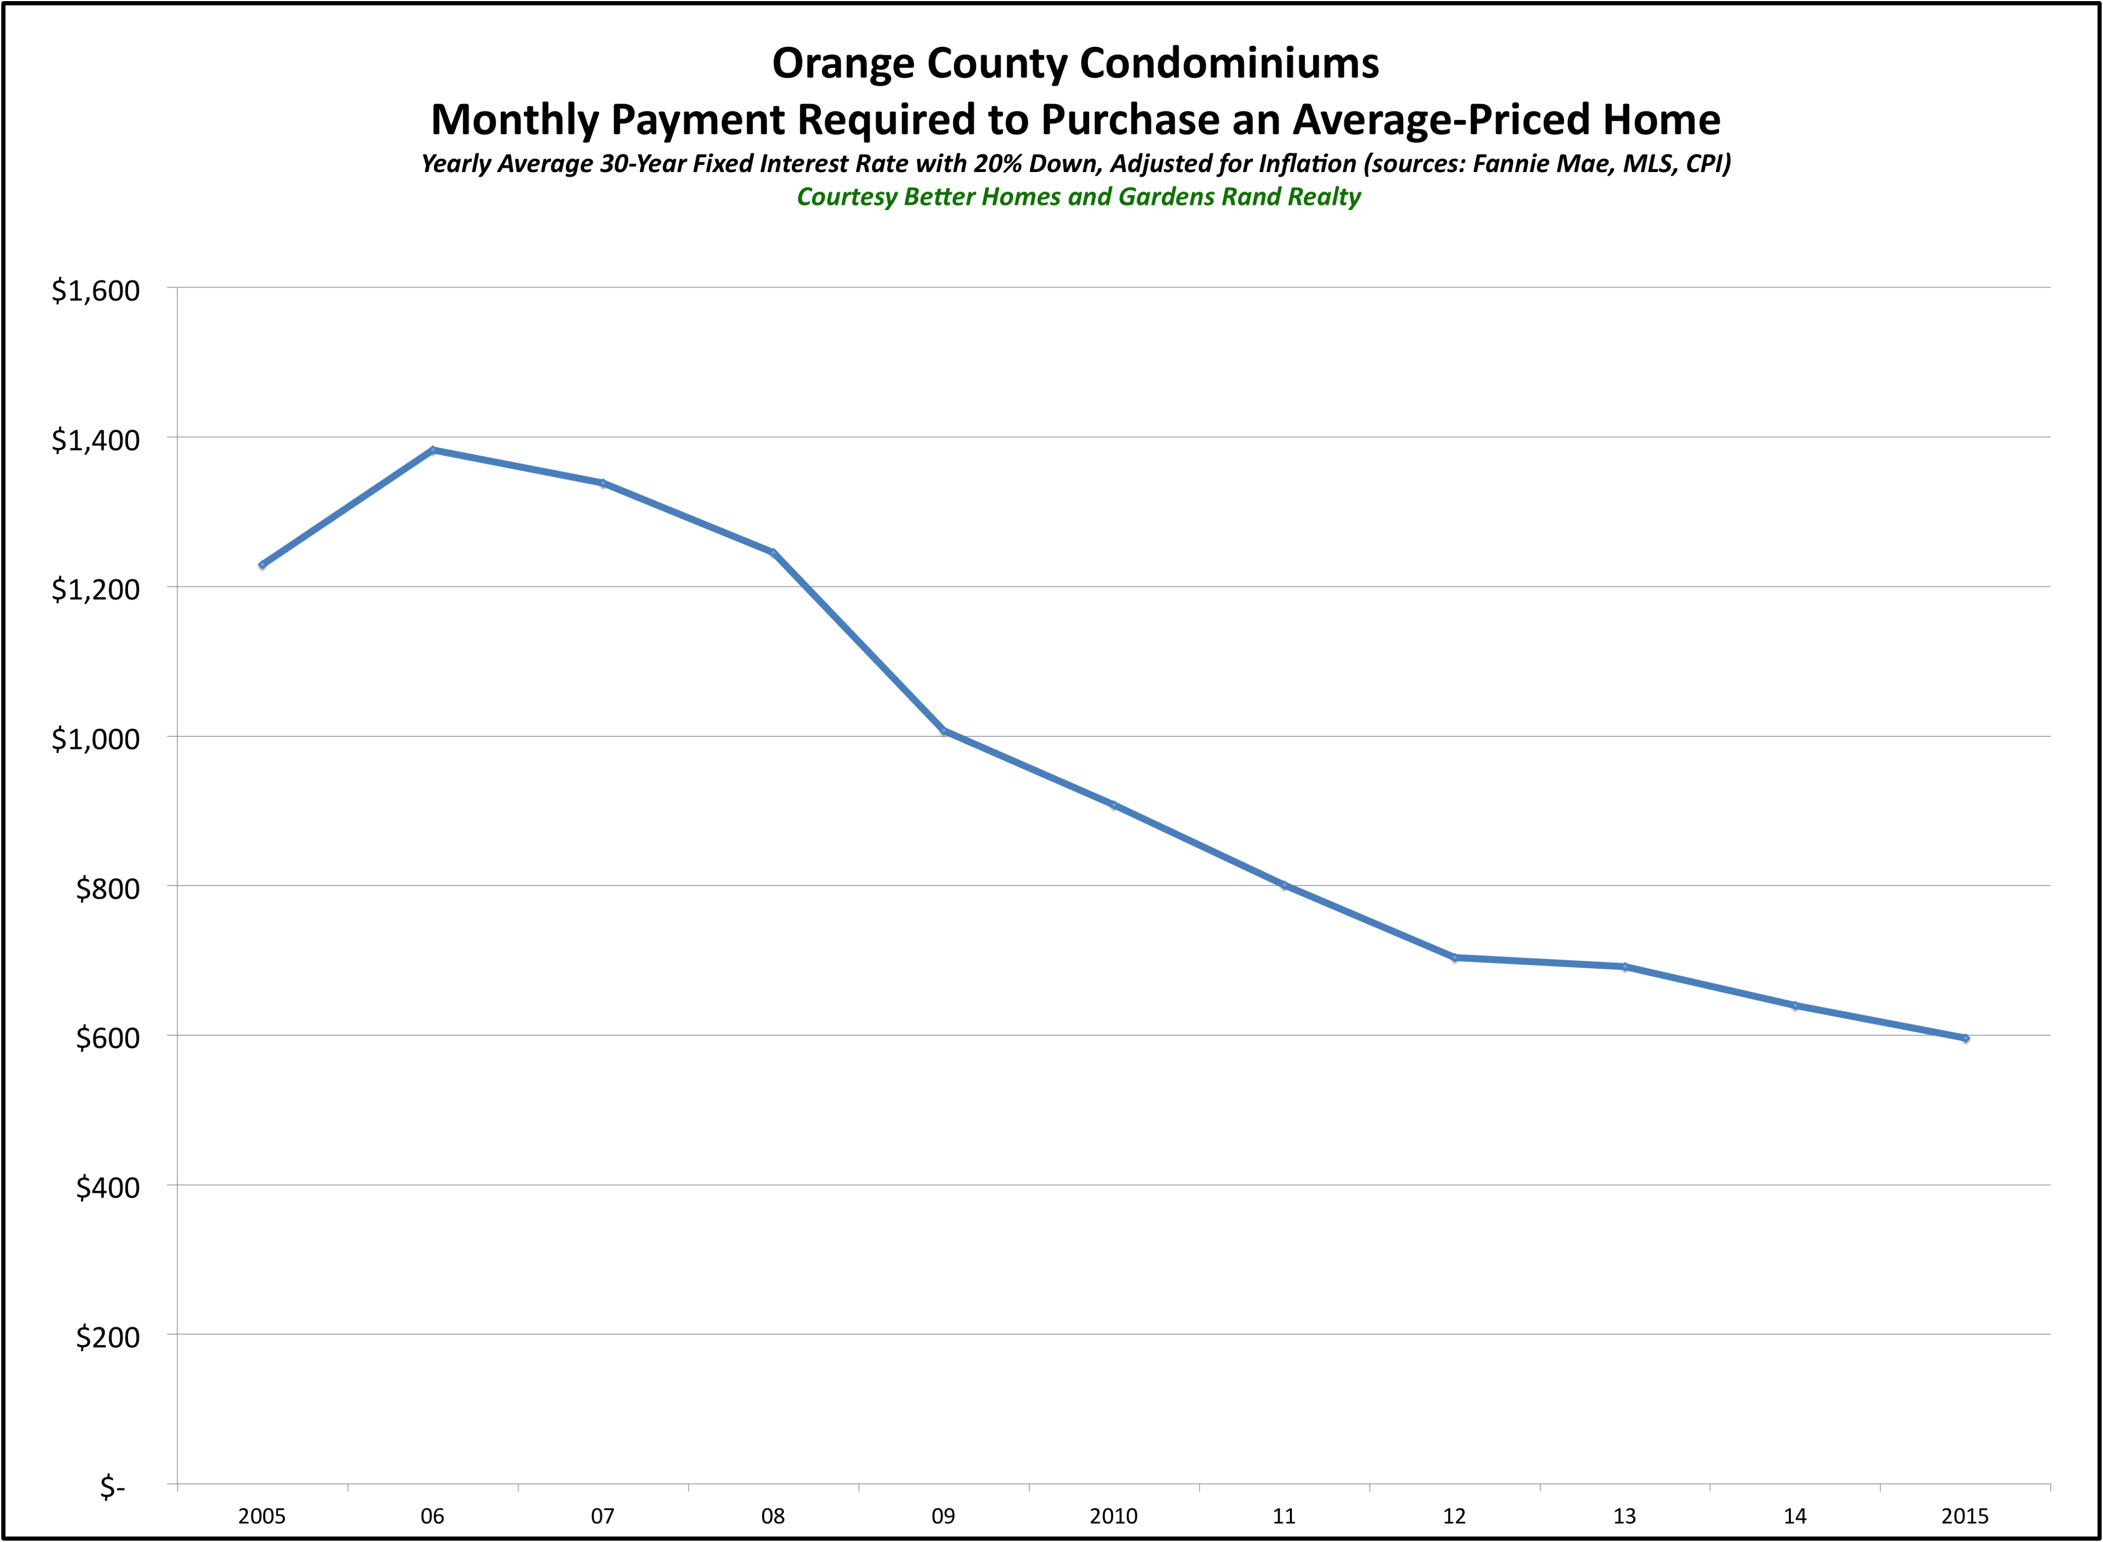 Orange Condos Affordability 2015